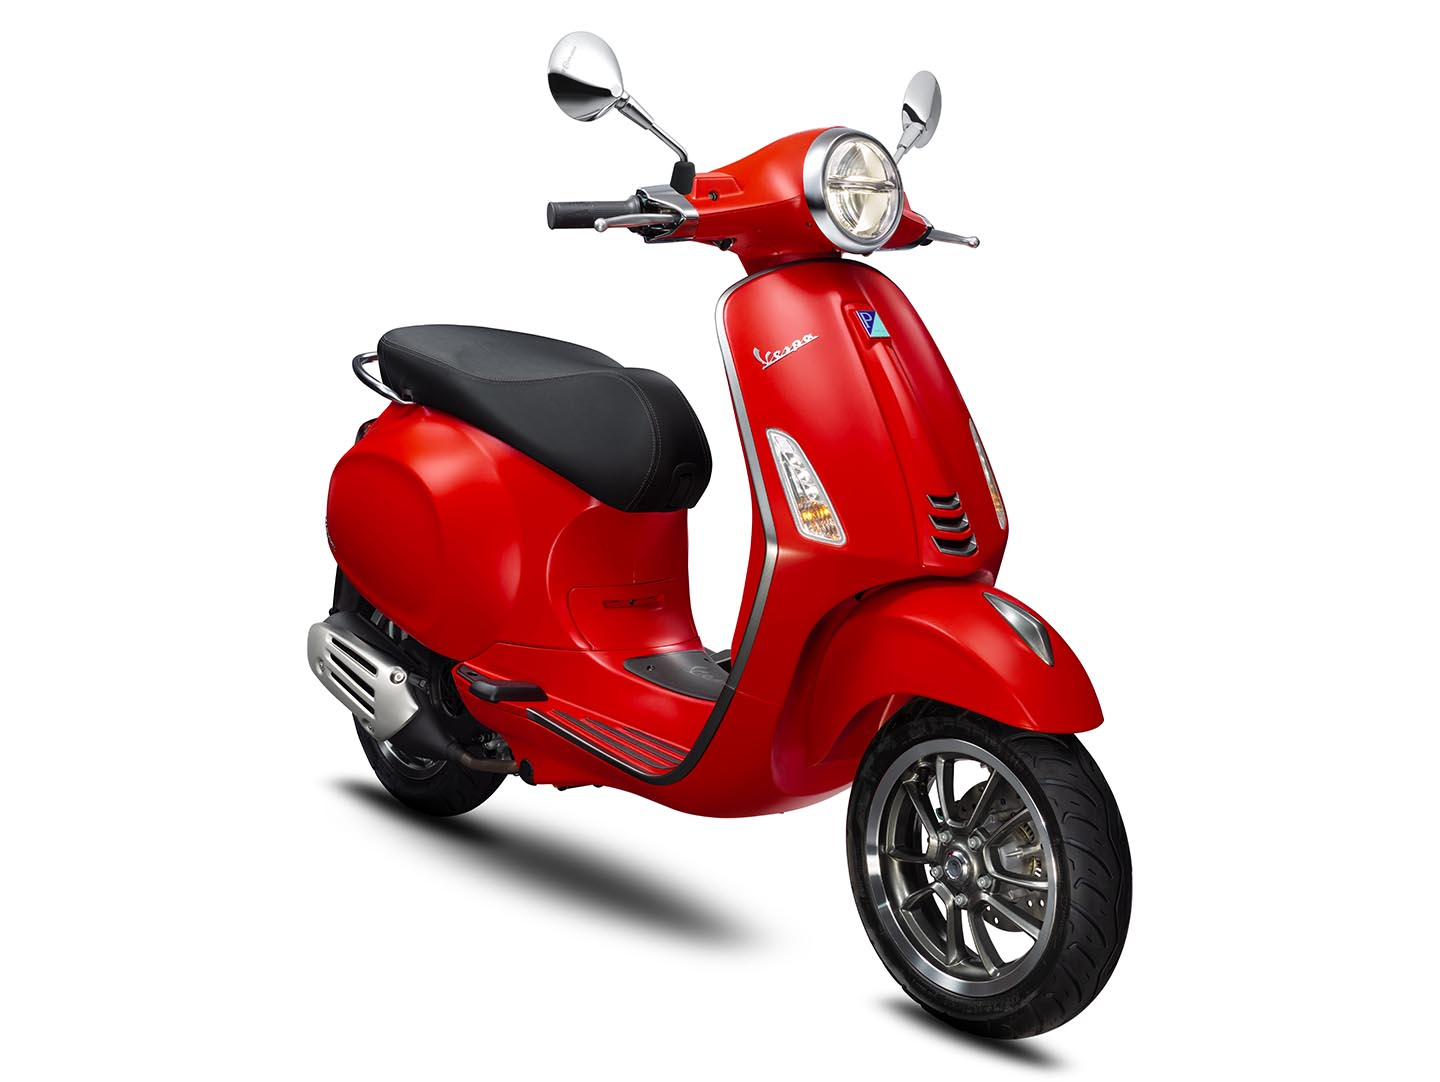 vespa-capture-one-catalog44213-1.jpg